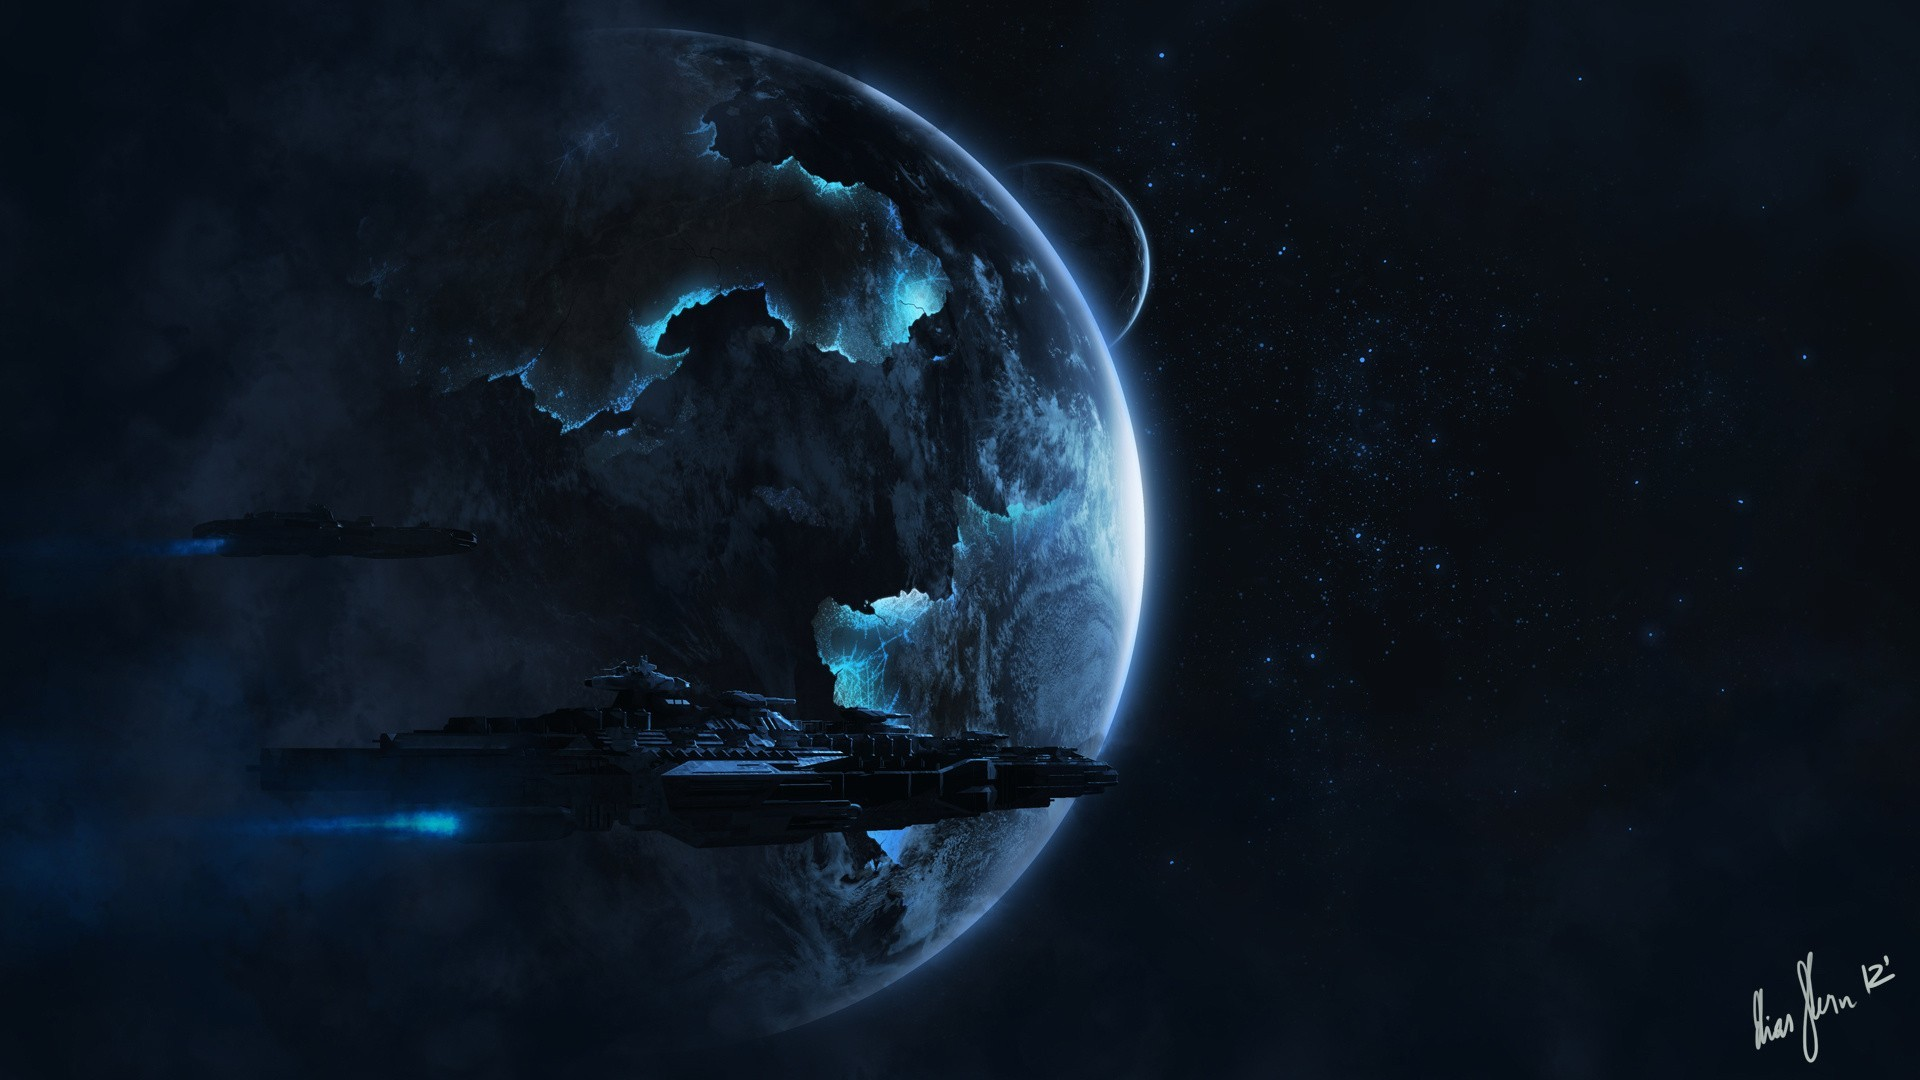 Outer Space Alien Spaceship Wallpaper